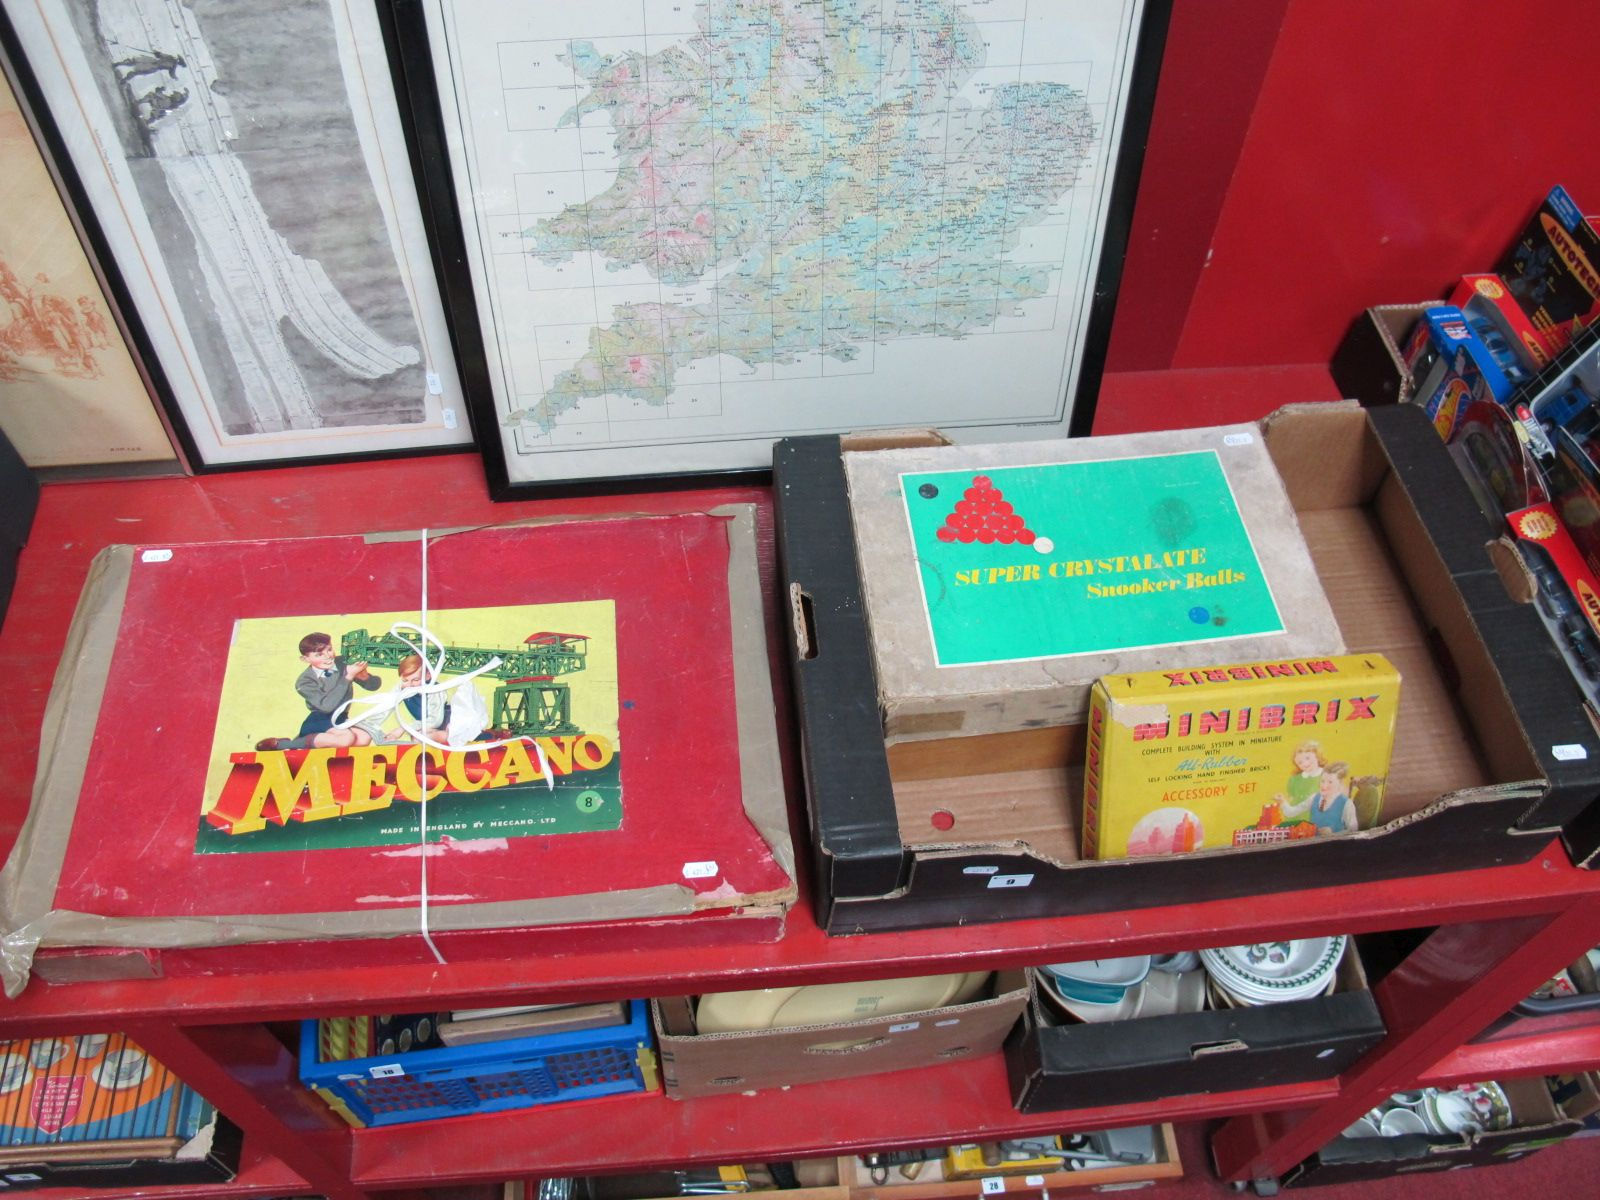 Lot 9 - A 1950's Meccano Mechanisms Set, Minibrix Accessory Set, Super Crystalate snooker balls (boxed), and